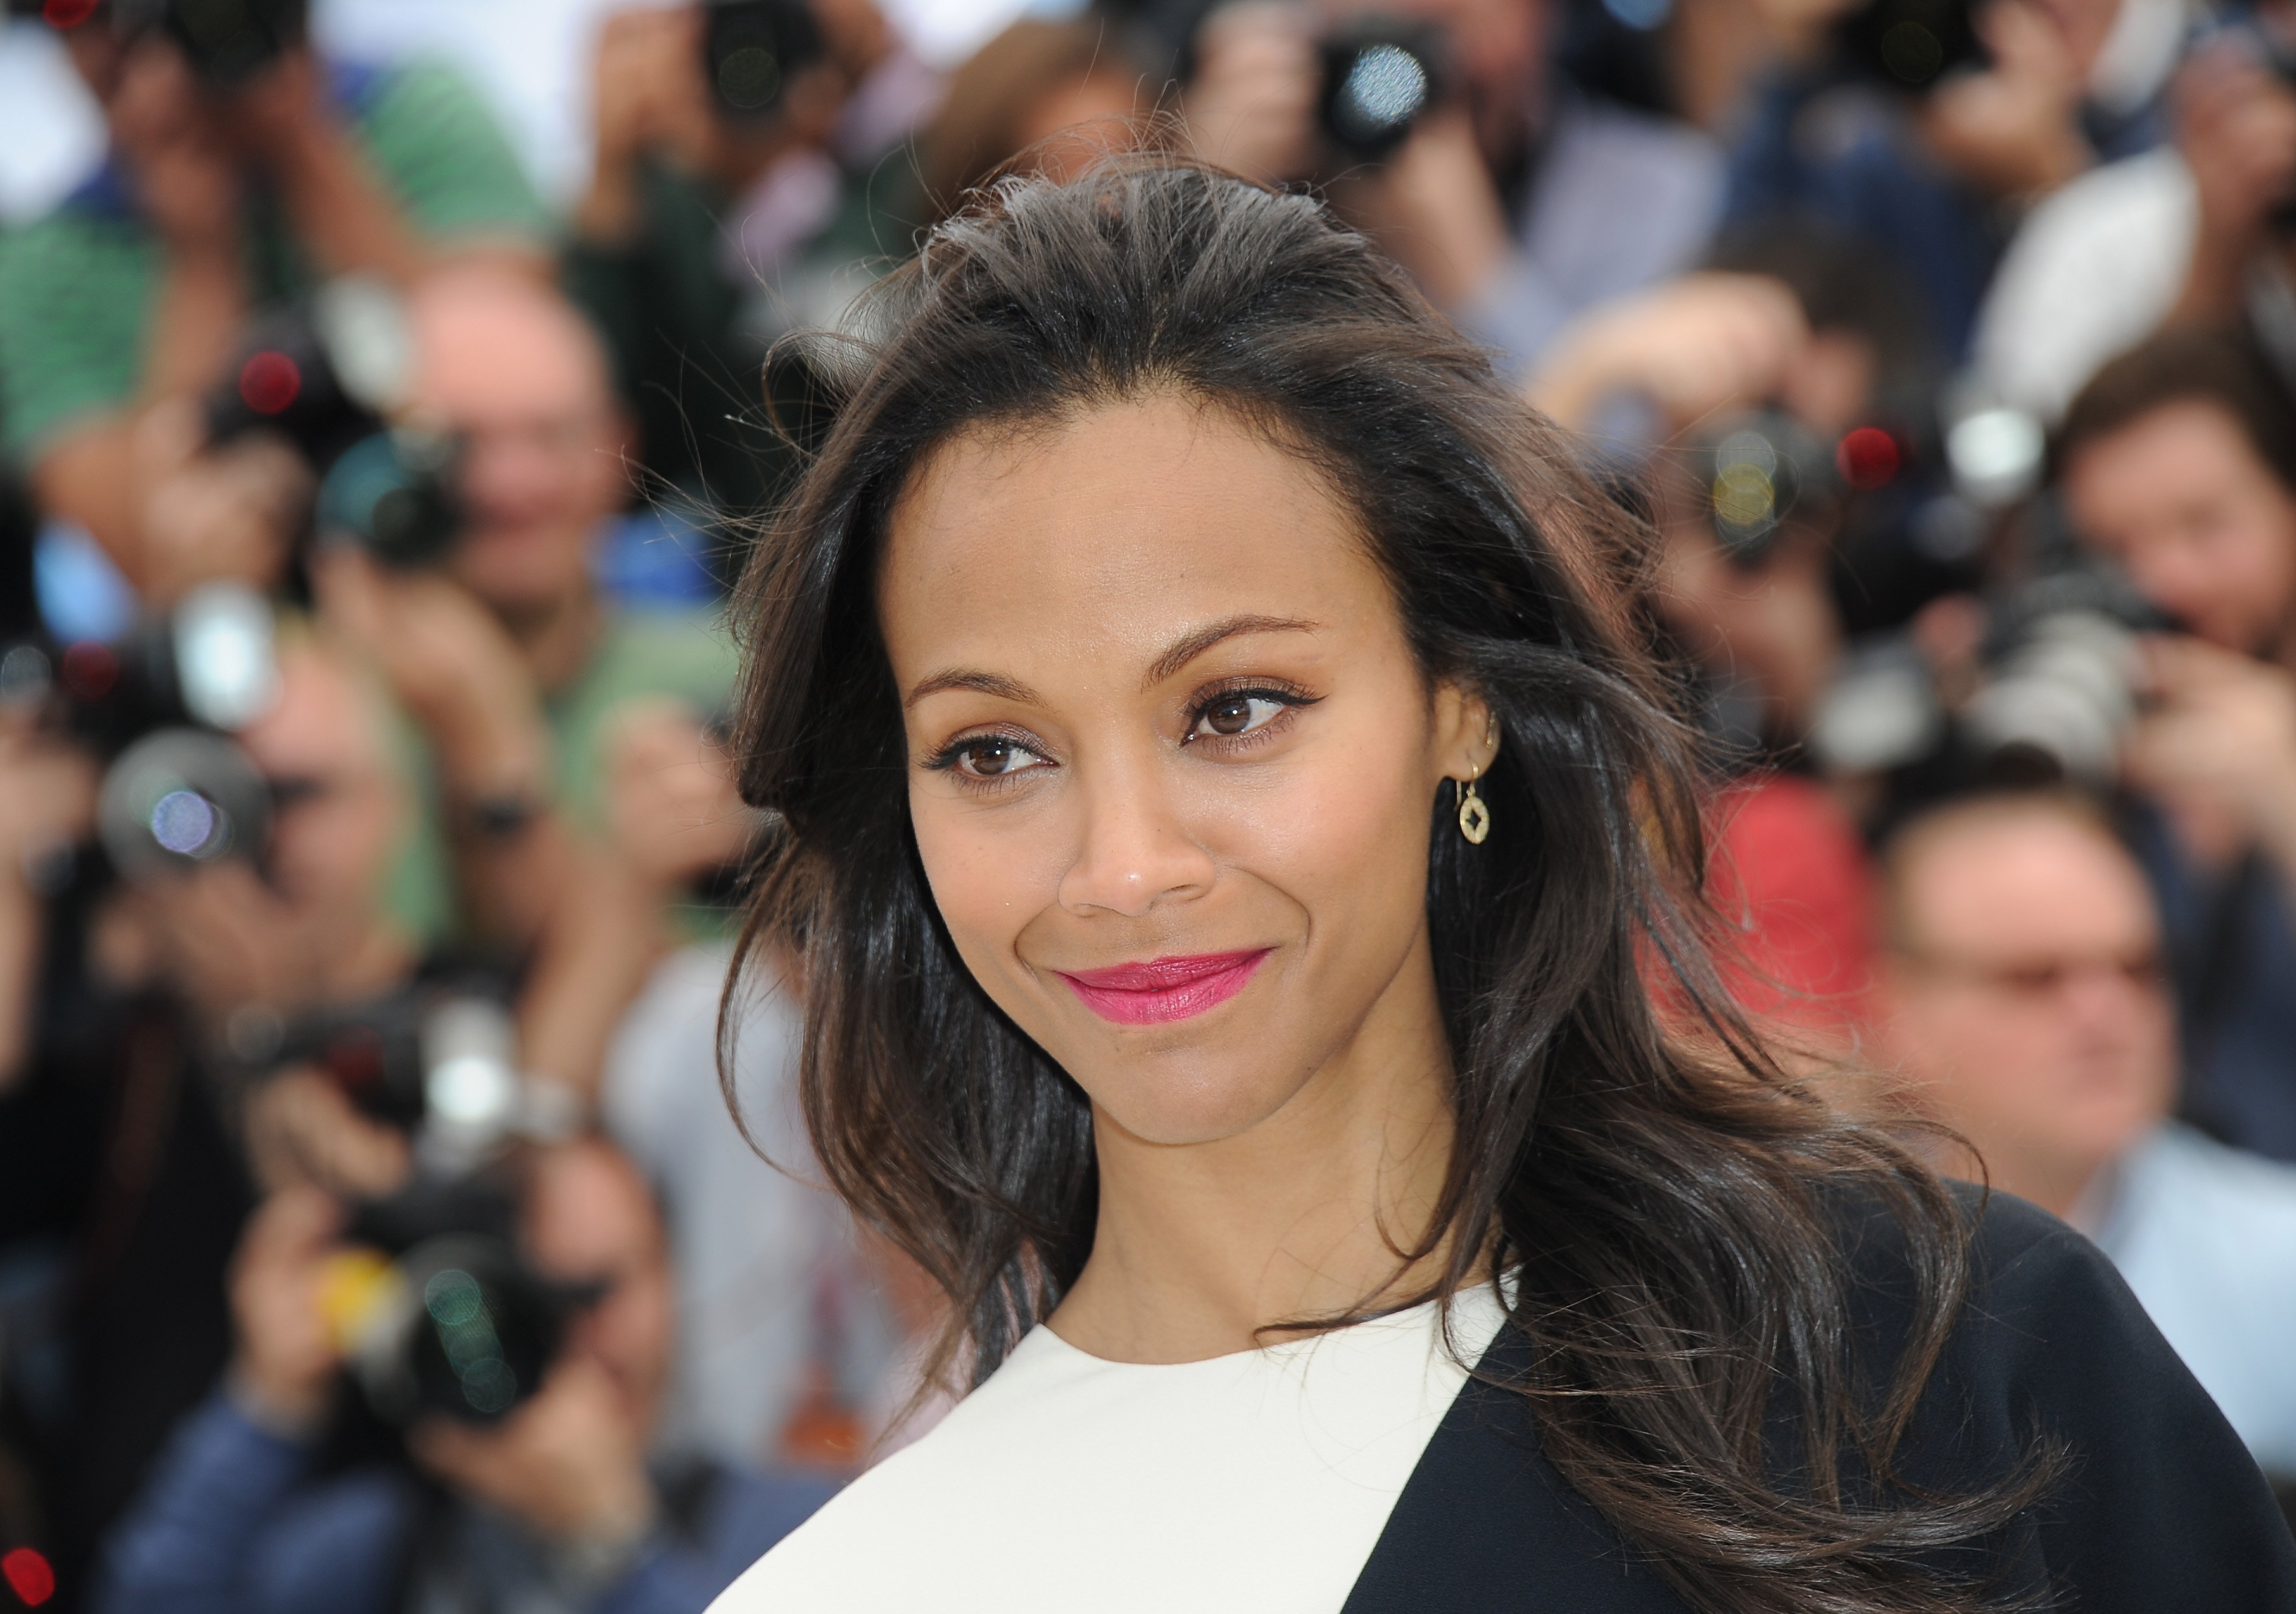 Zoe Saldana at the 66th Annual Cannes Film Festival on May 20, 2013 in Cannes, France. | Photo: Getty Images